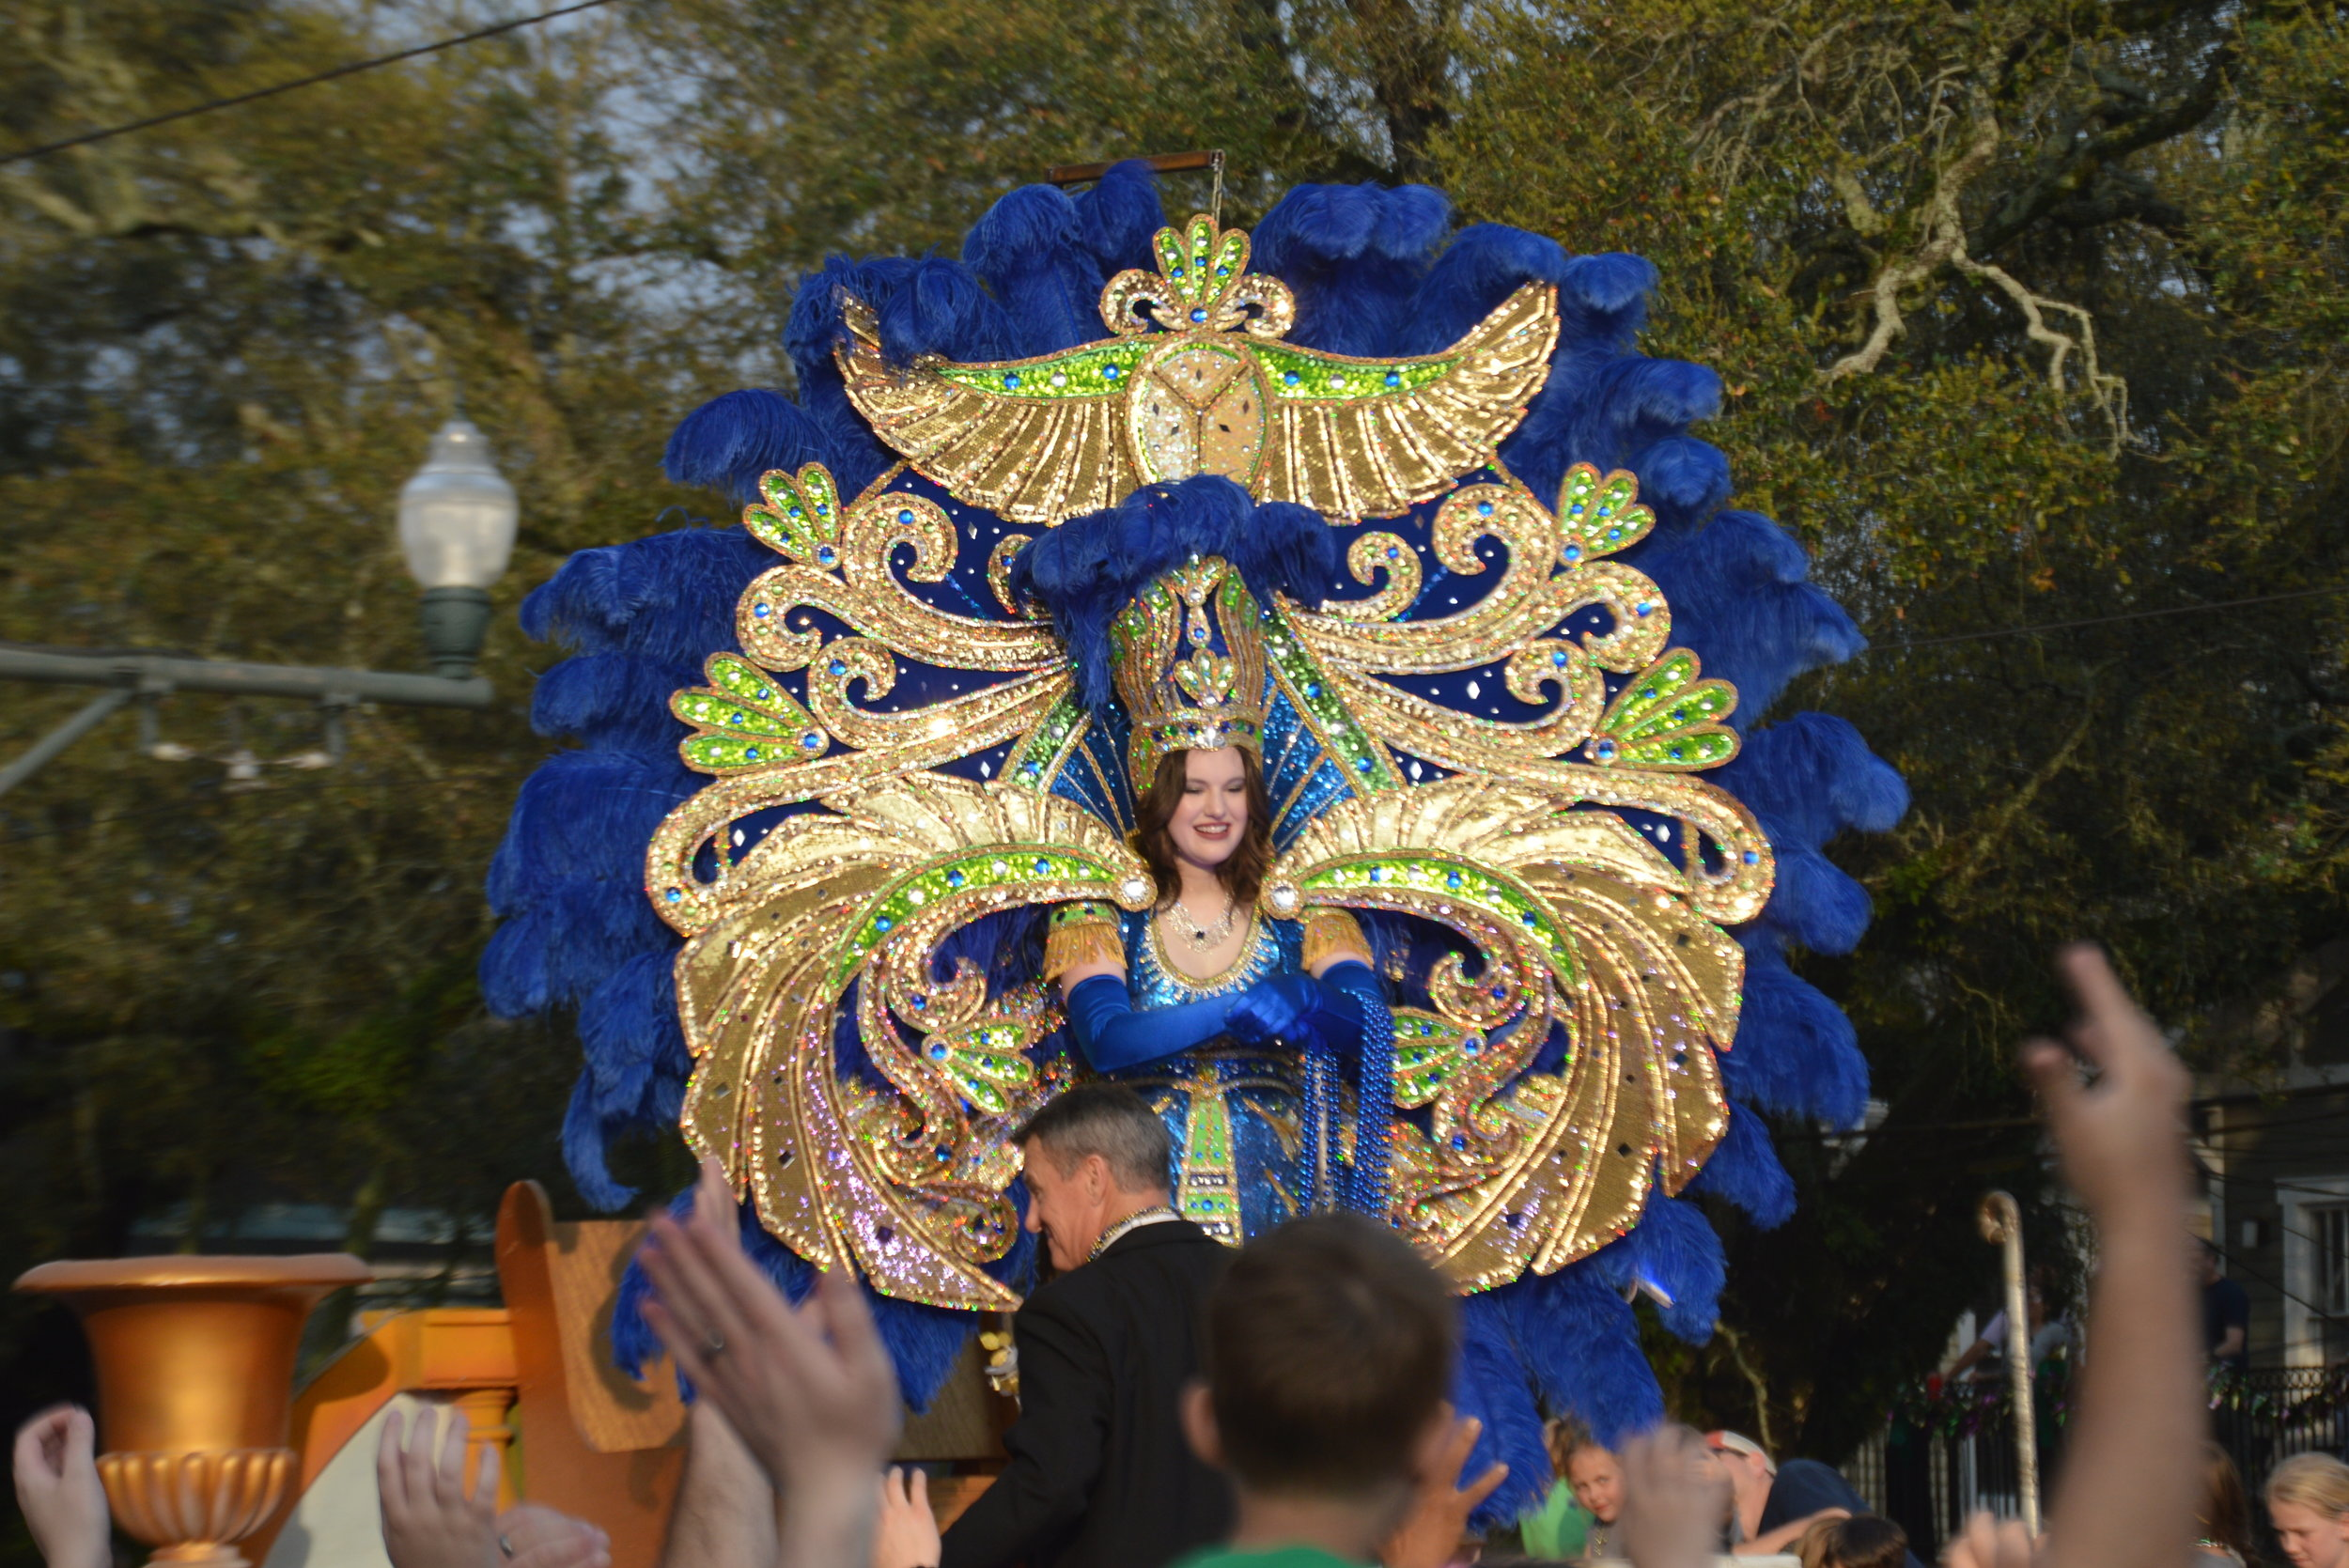 Krewe of Endymion